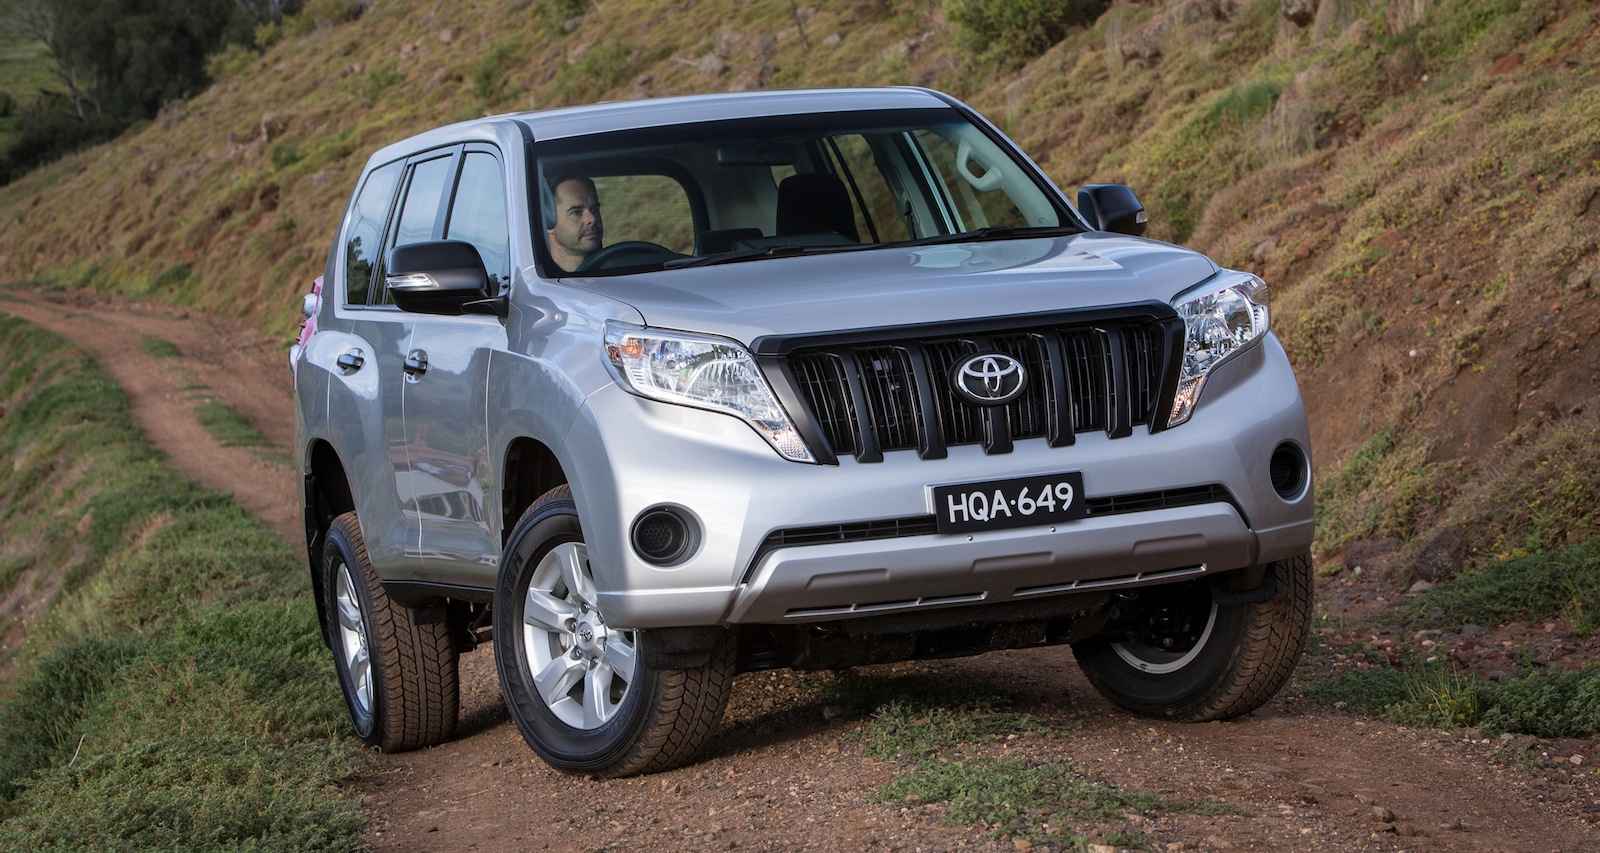 2014 toyota landcruiser prado pricing and specifications photos 1 of 18